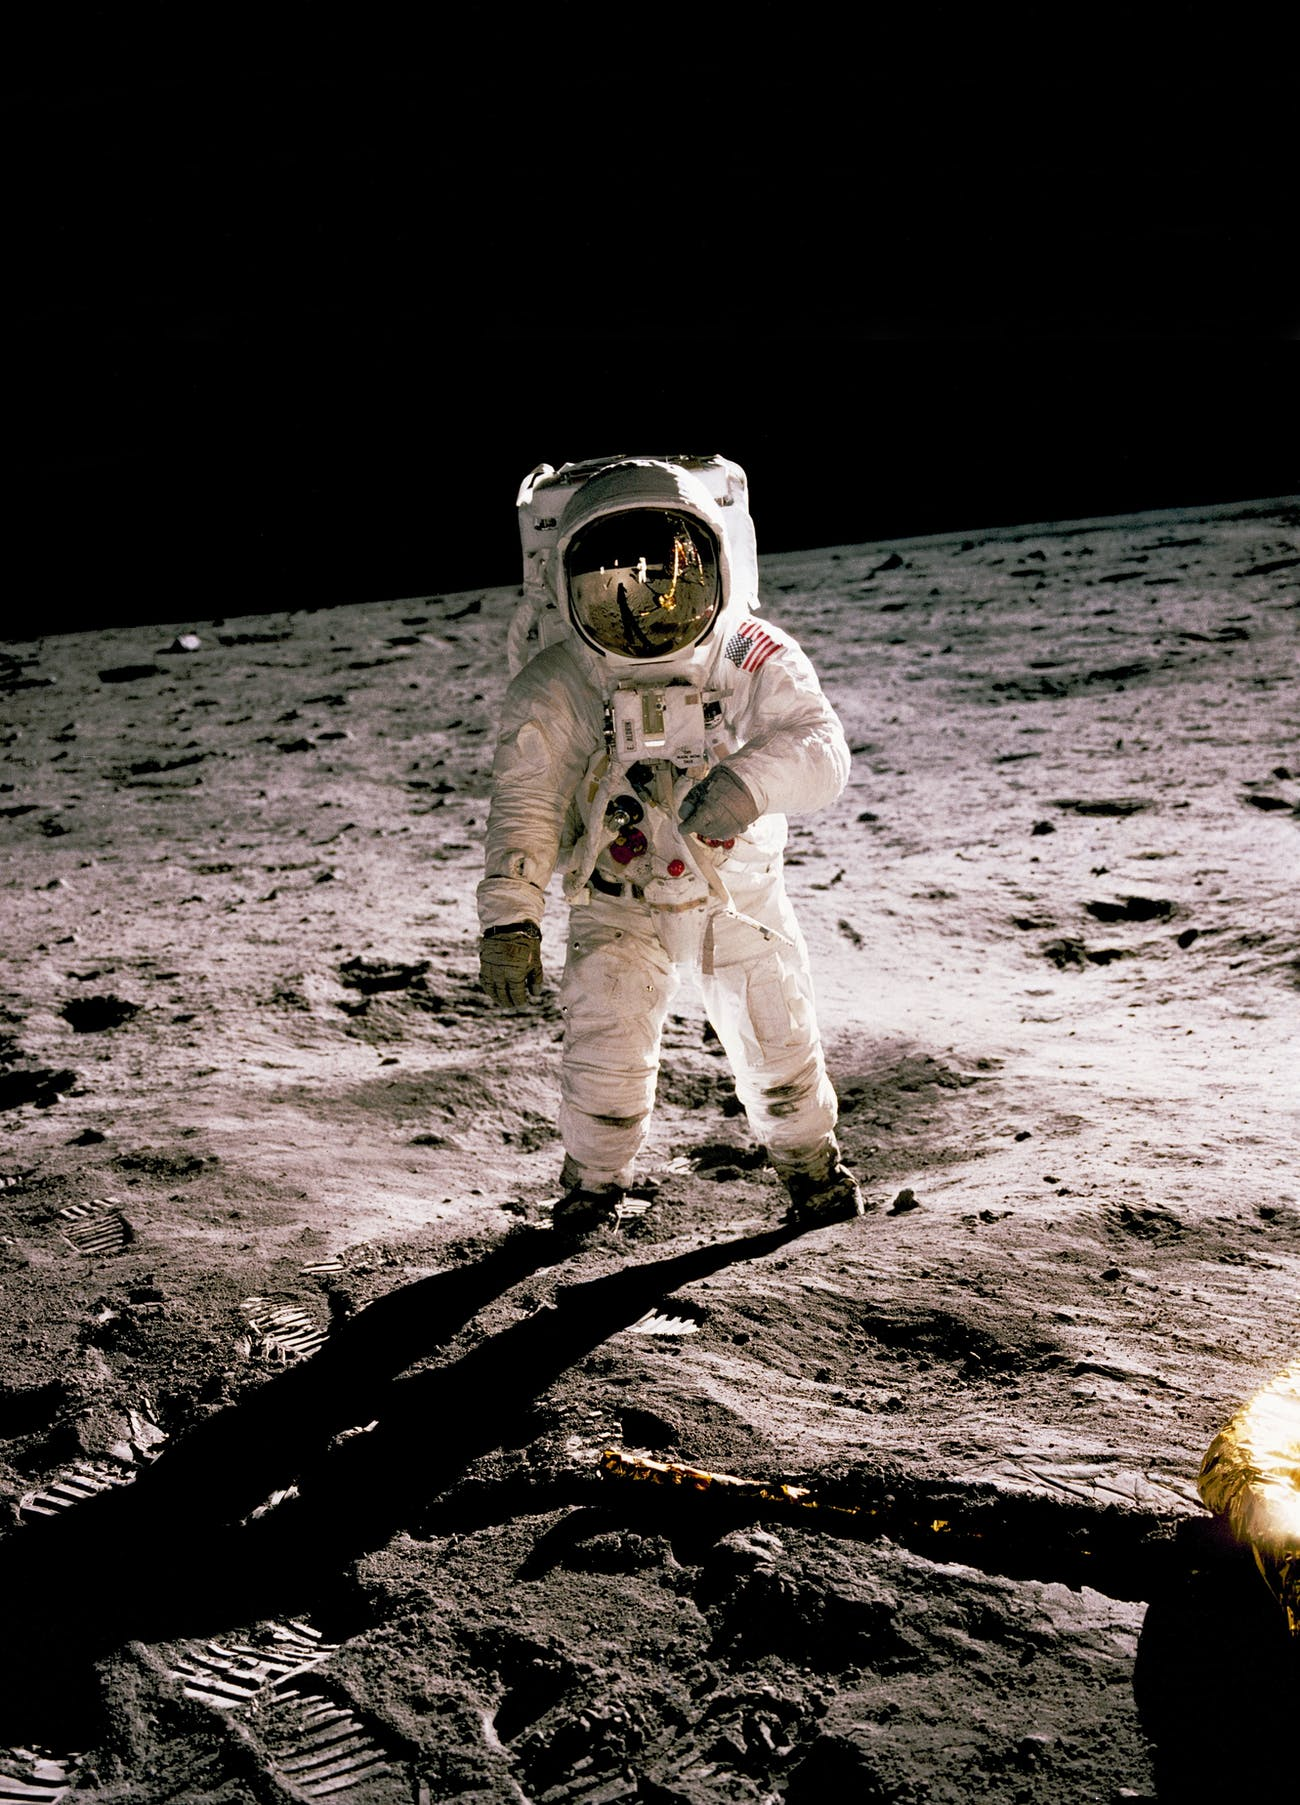 The Apollo A7L on the moon.